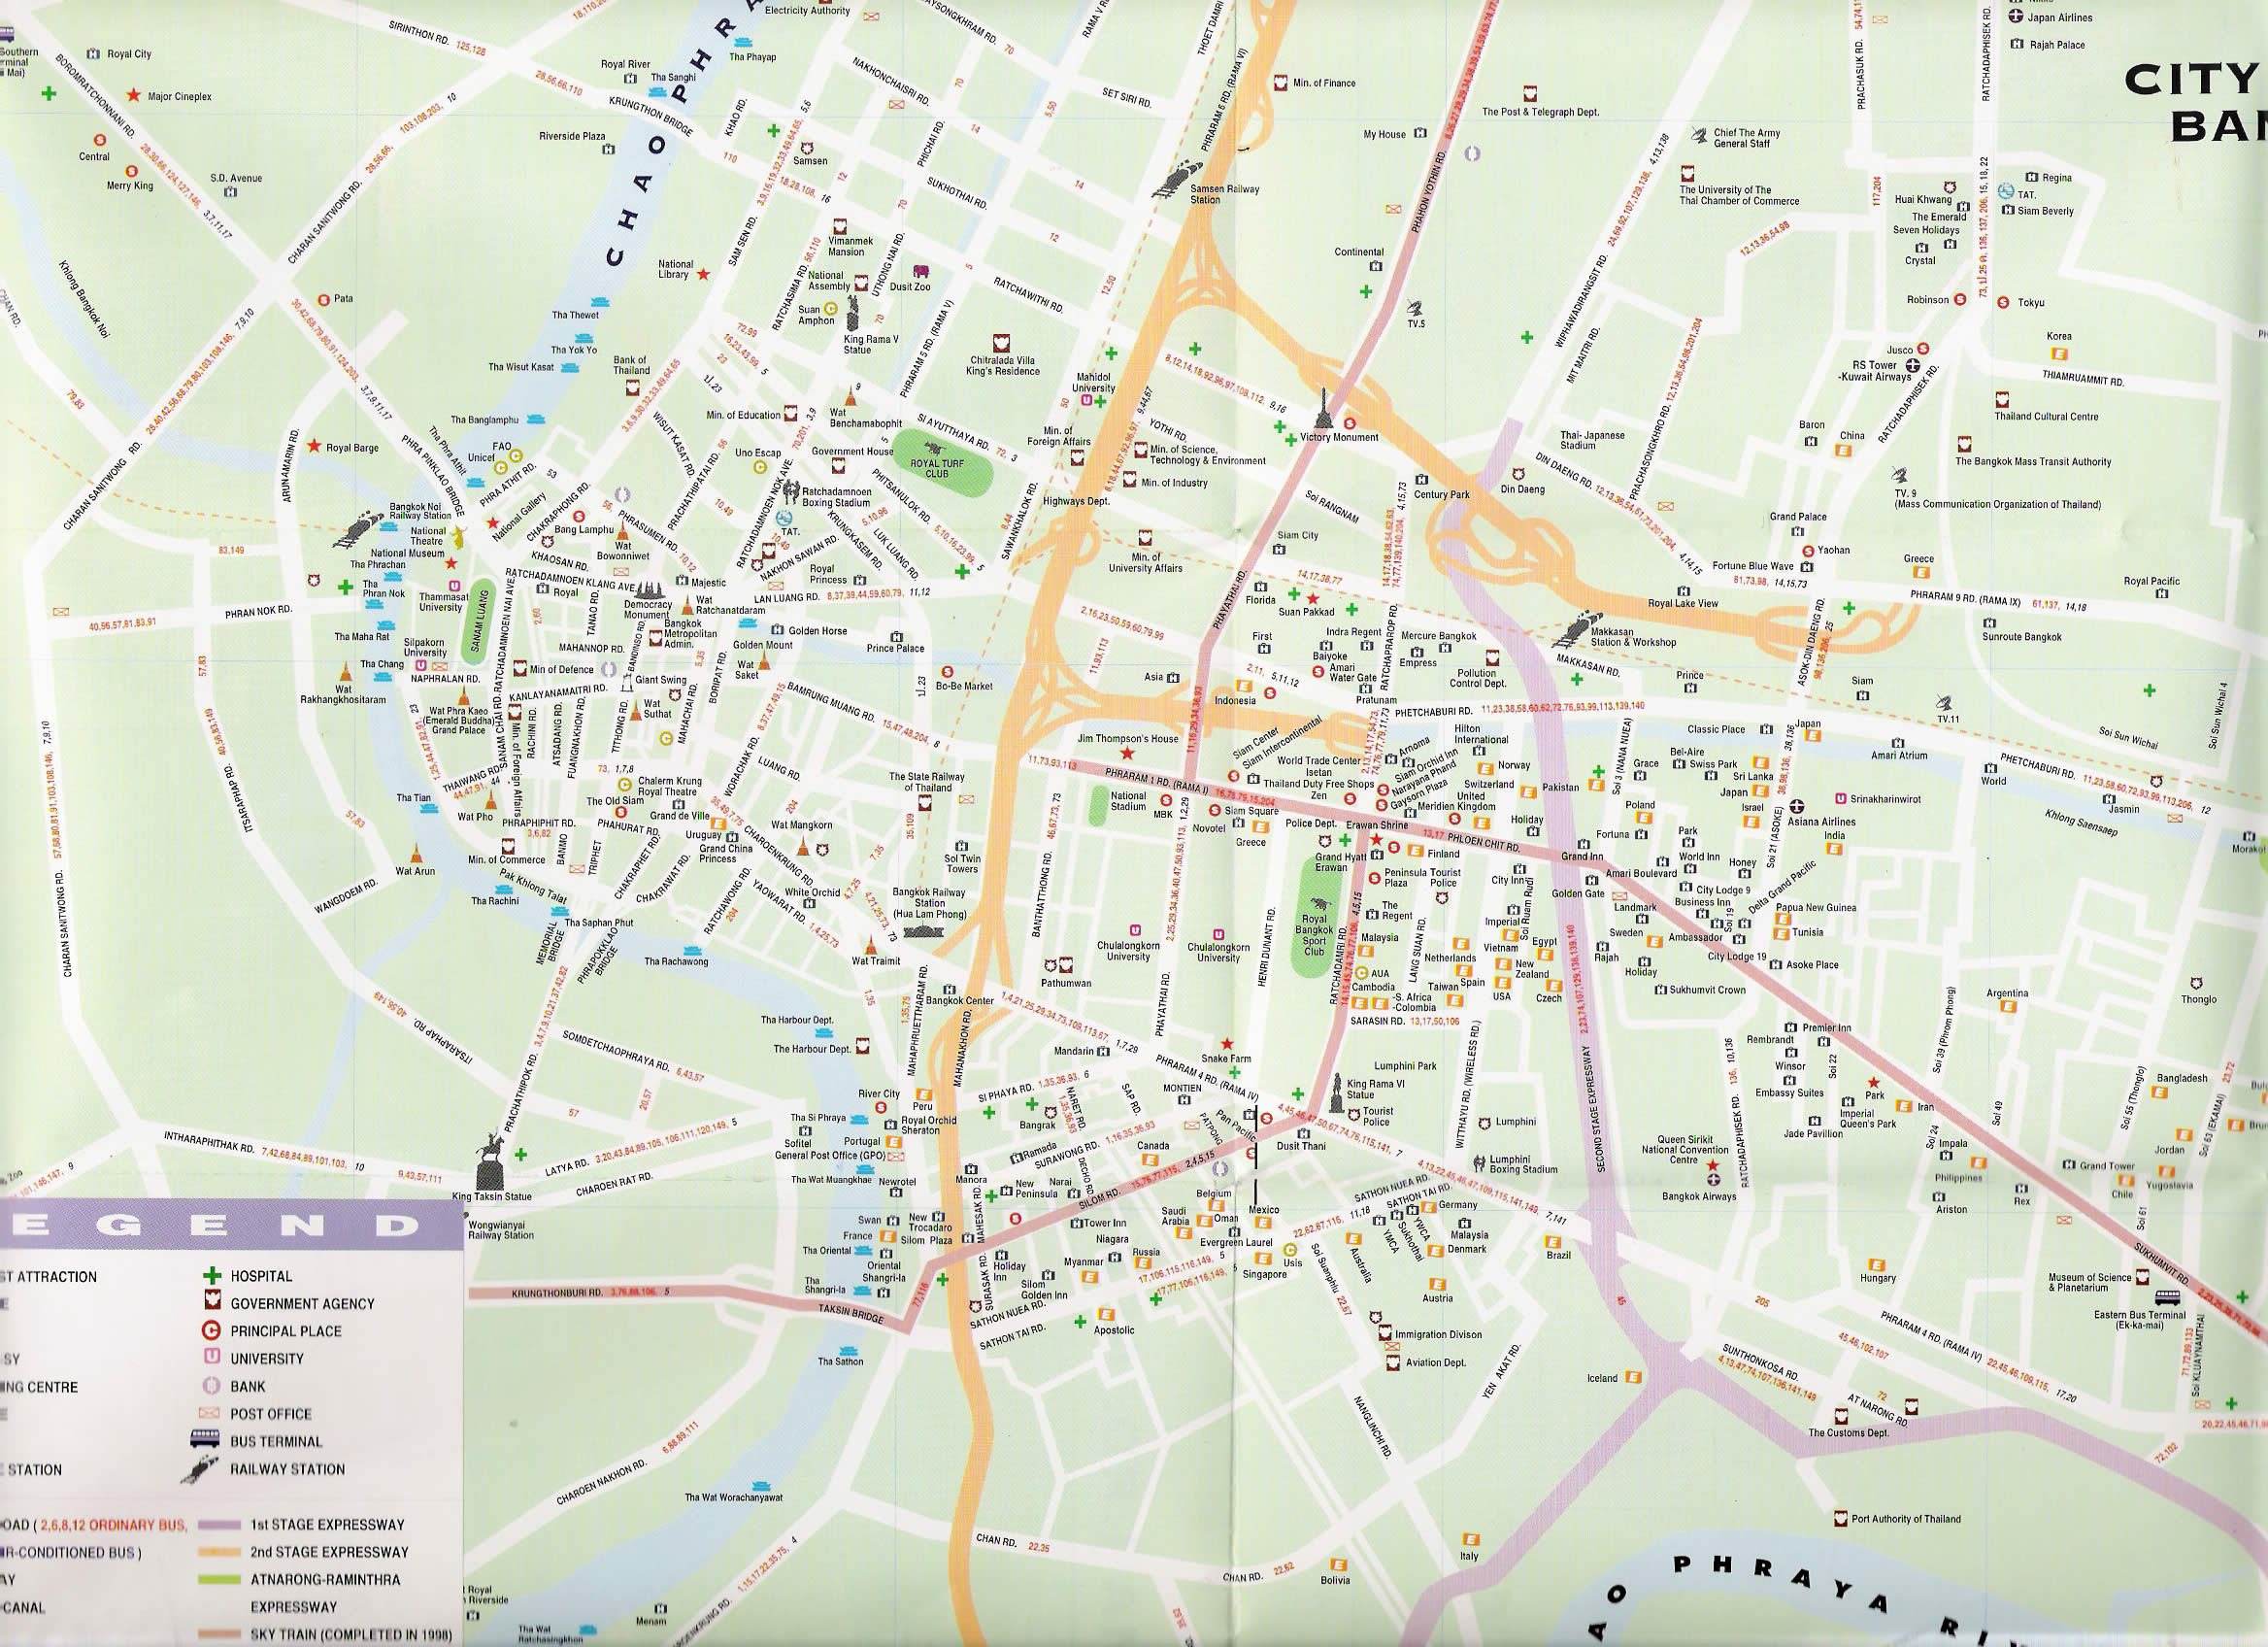 Complete Bangkok Thailand Street Map for Visitor,Bangkok Thailand Road Map,Map of Bangkok street,things to do in bangkok attractions map,bangkok thailand metropolis map